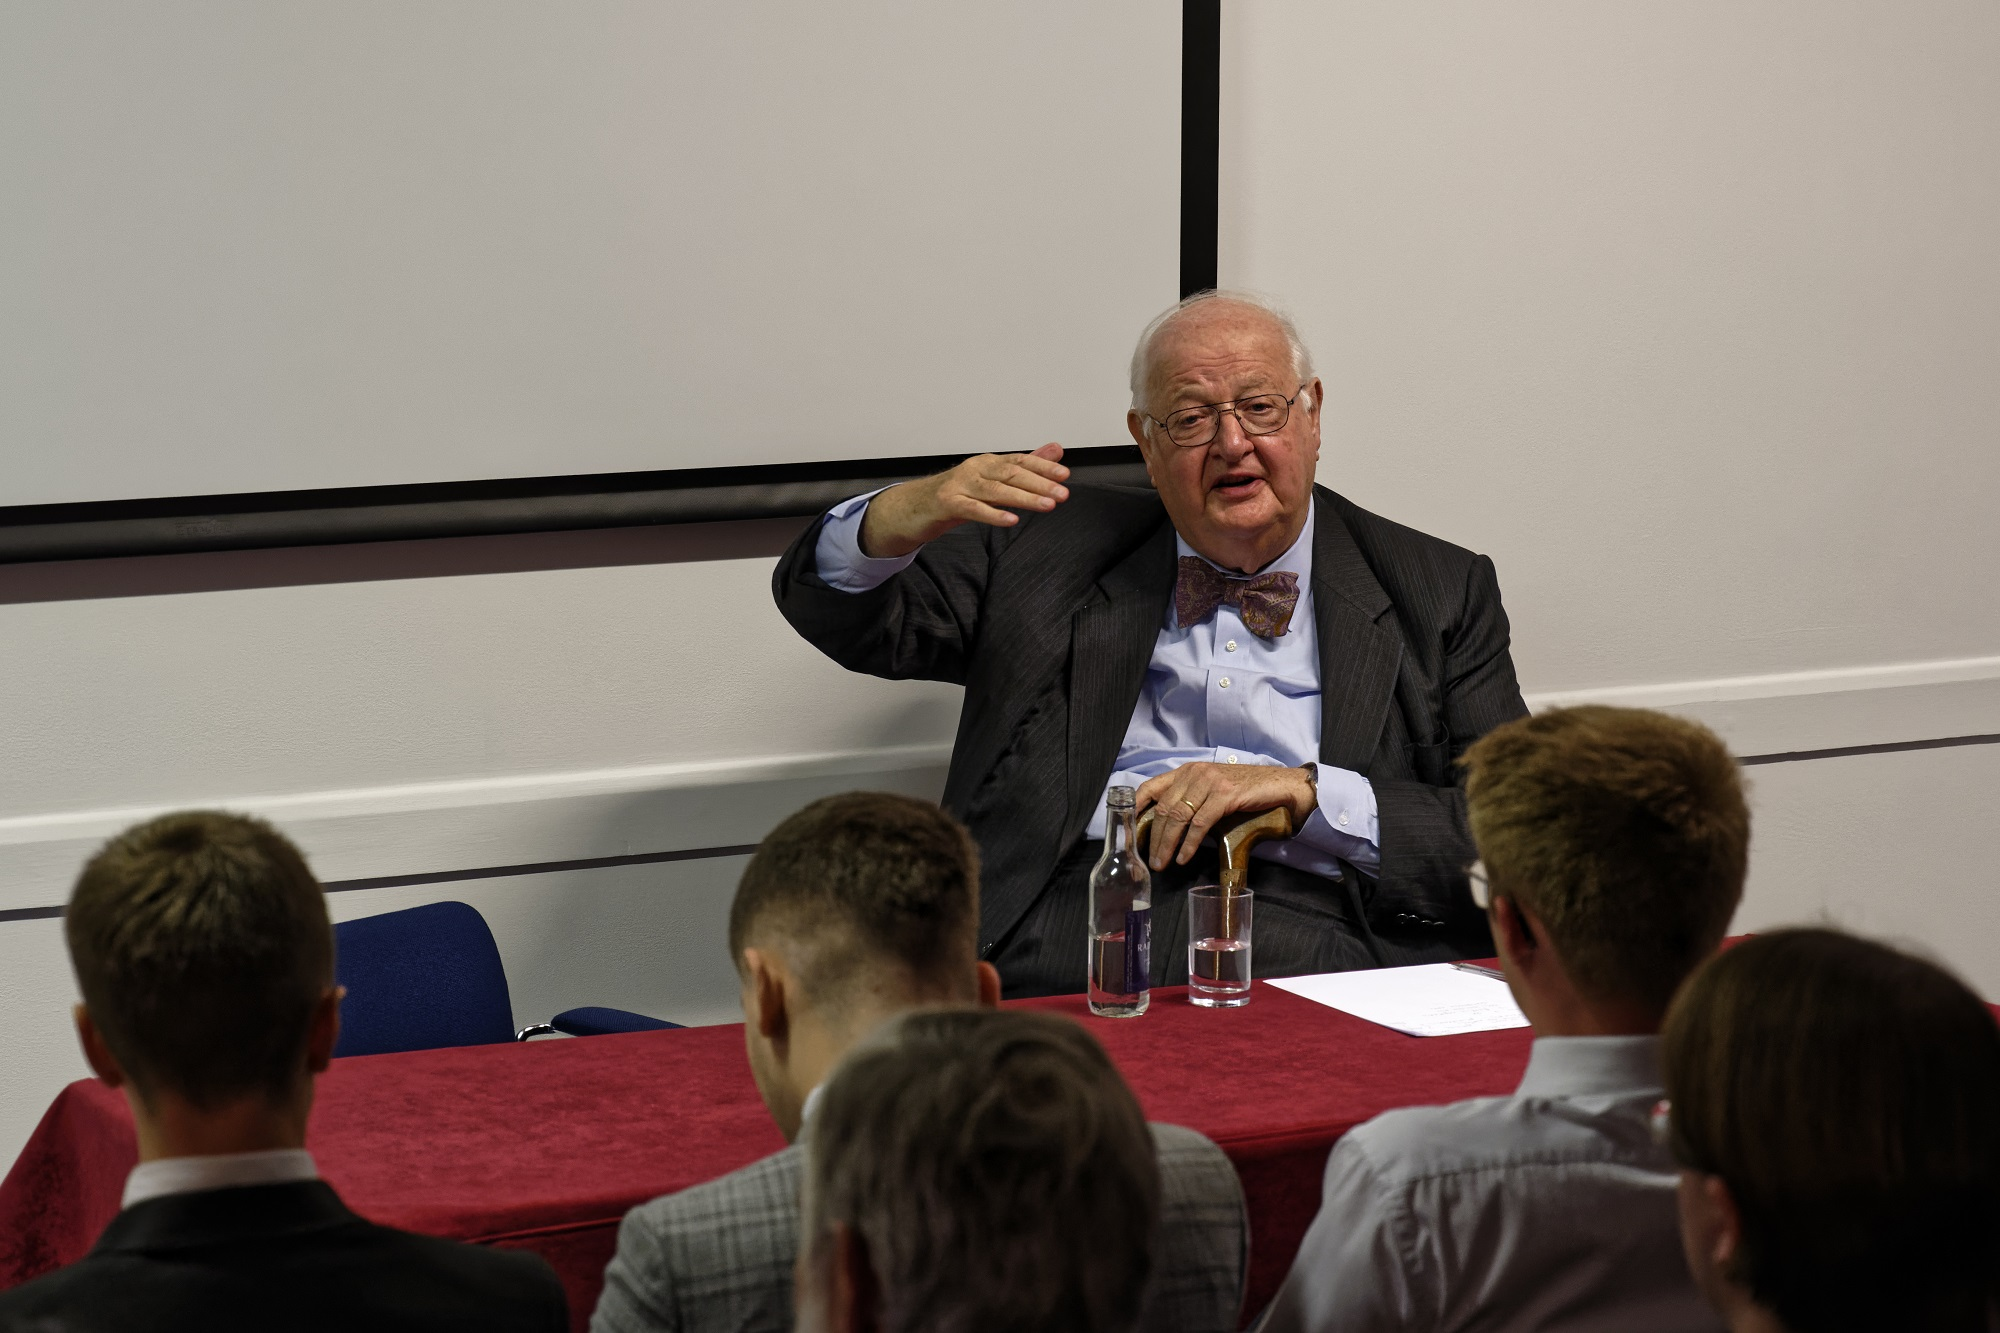 Professor Sir Angus Deaton returned to Fitzwilliam on Tuesday